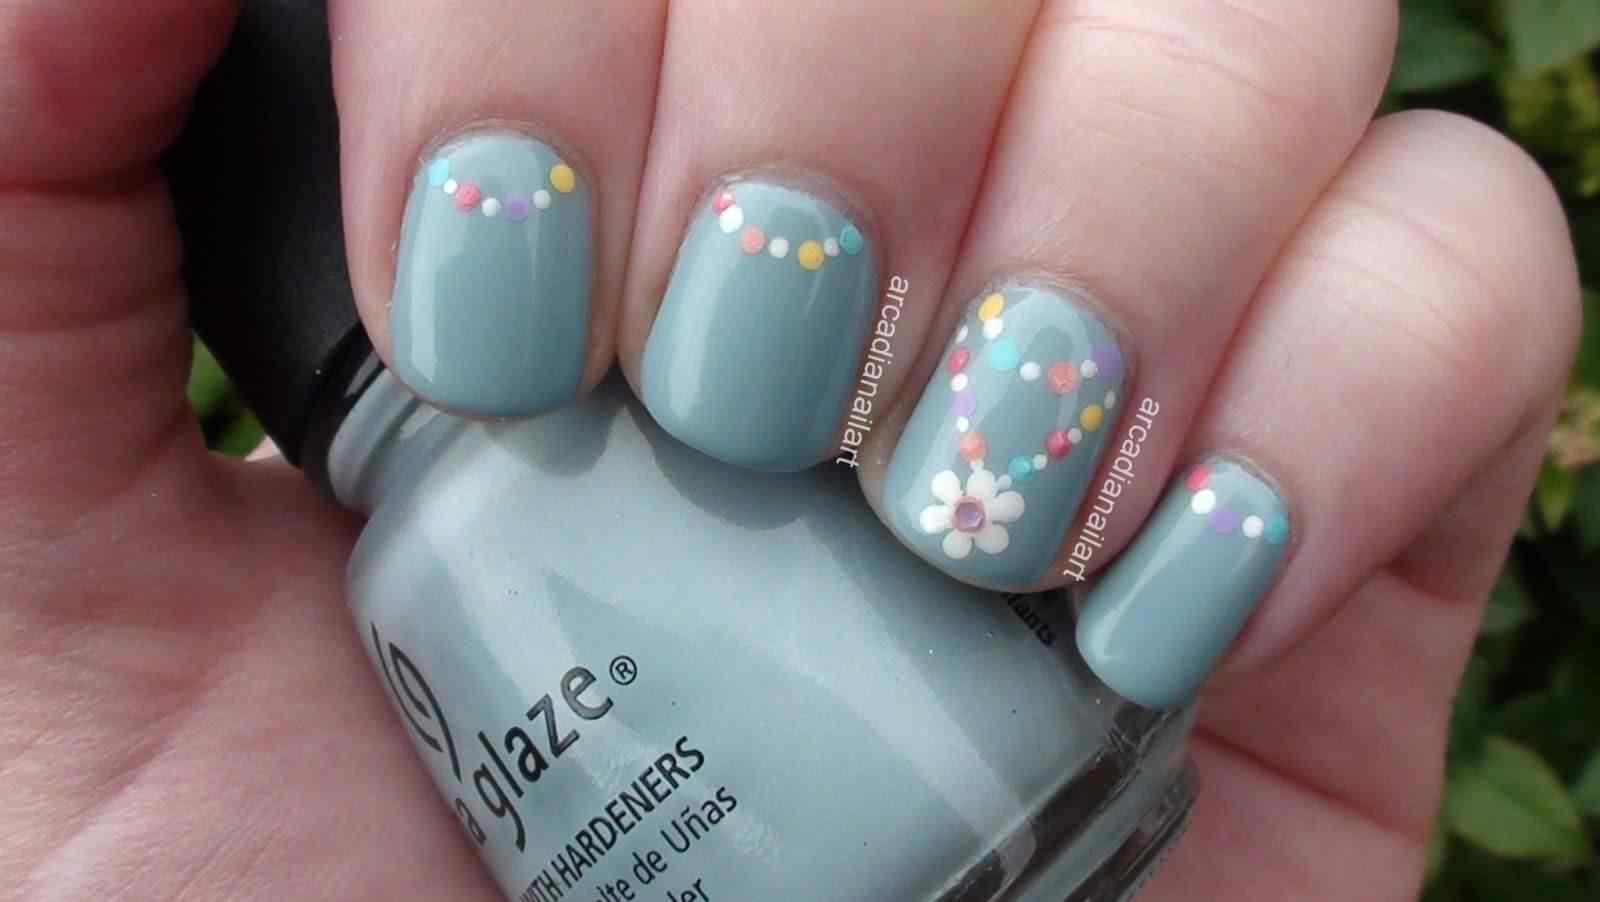 Fuente: http://ukfashiondesign.com/25-creative-and-inspiring-pastel-nail-art-design-colors-2015/